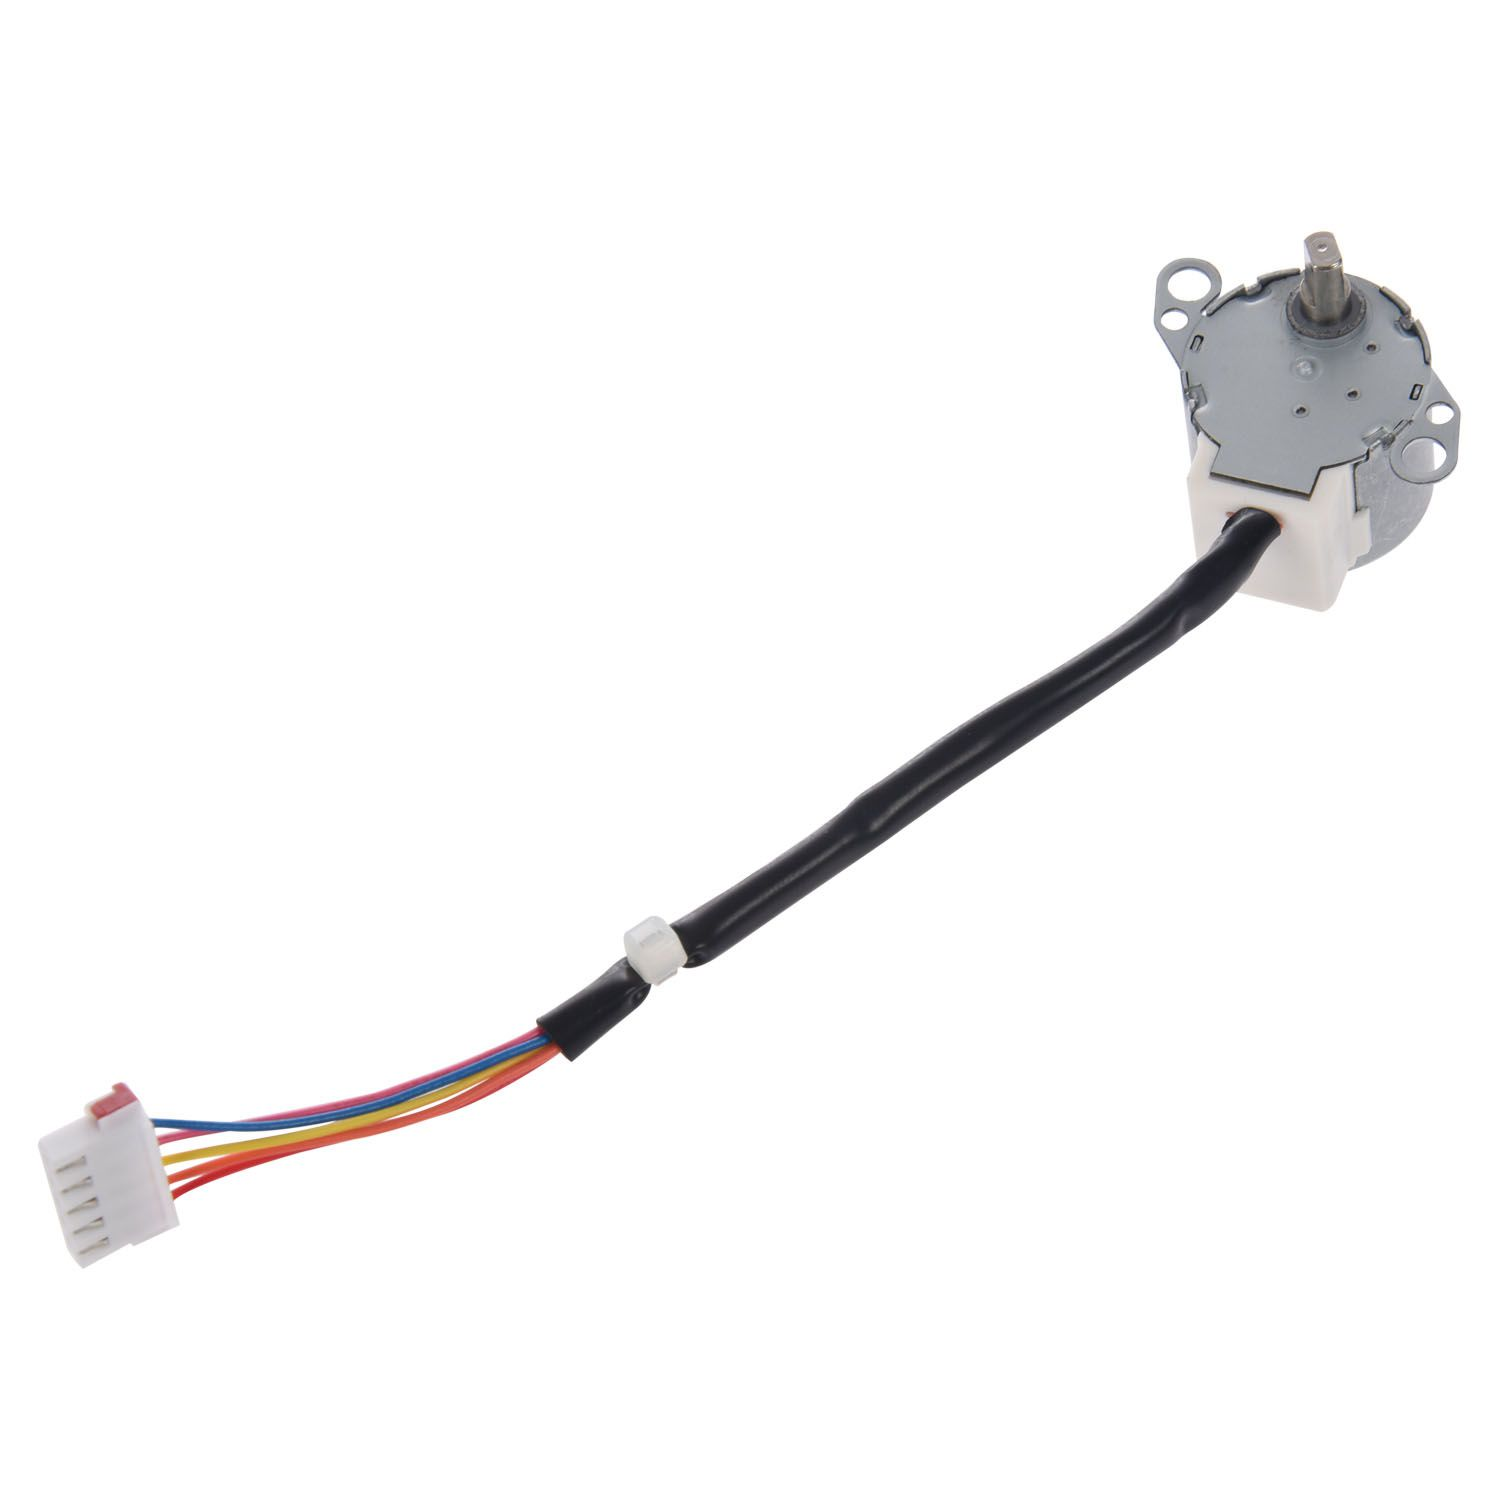 Wholesales item DC <font><b>12V</b></font> CNC Reducing Stepping Stepper Motor 0.6A 10oz.in <font><b>24BYJ48</b></font> Silver image